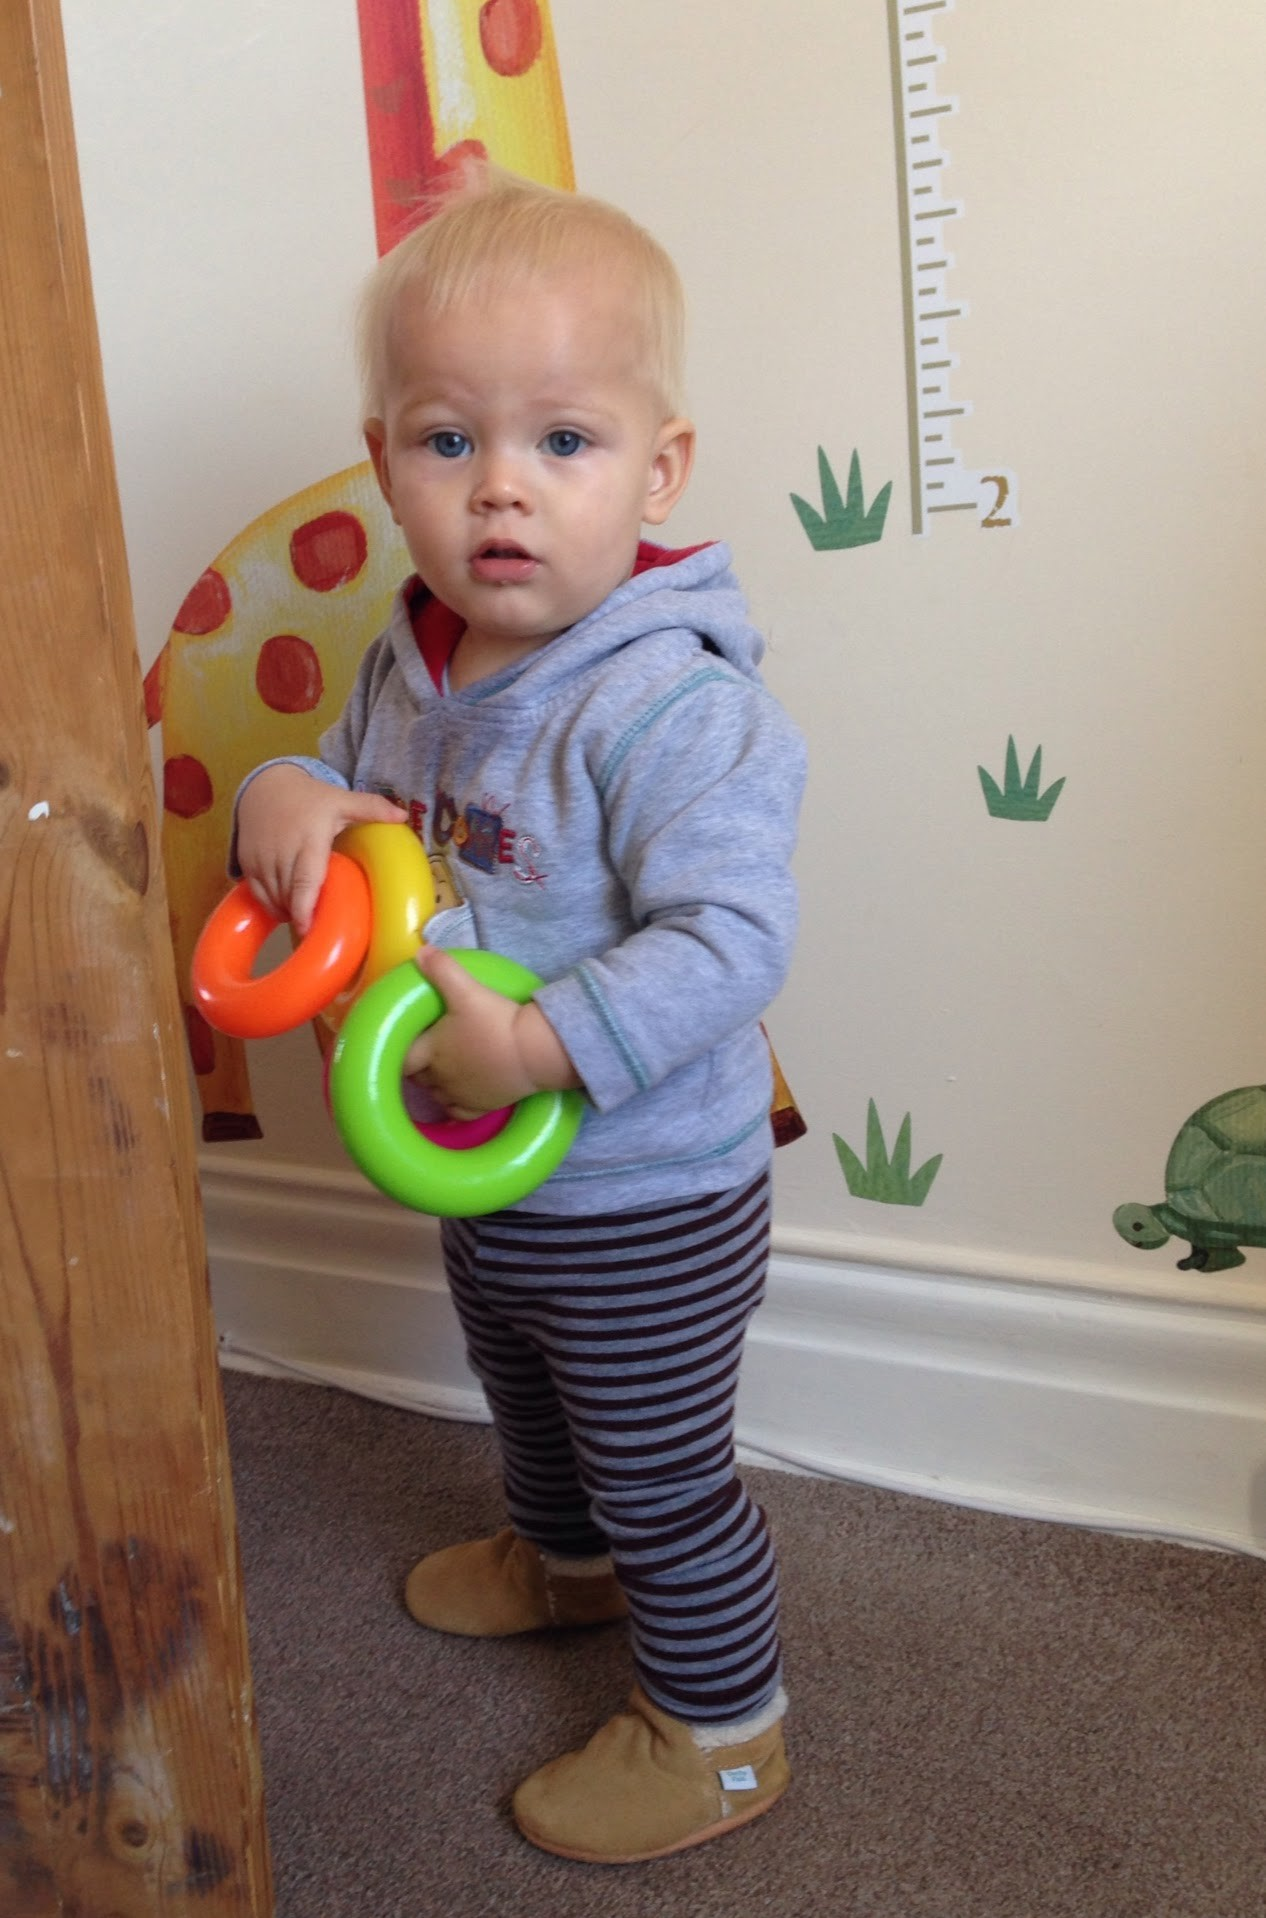 toddler holding plastic stacking rings